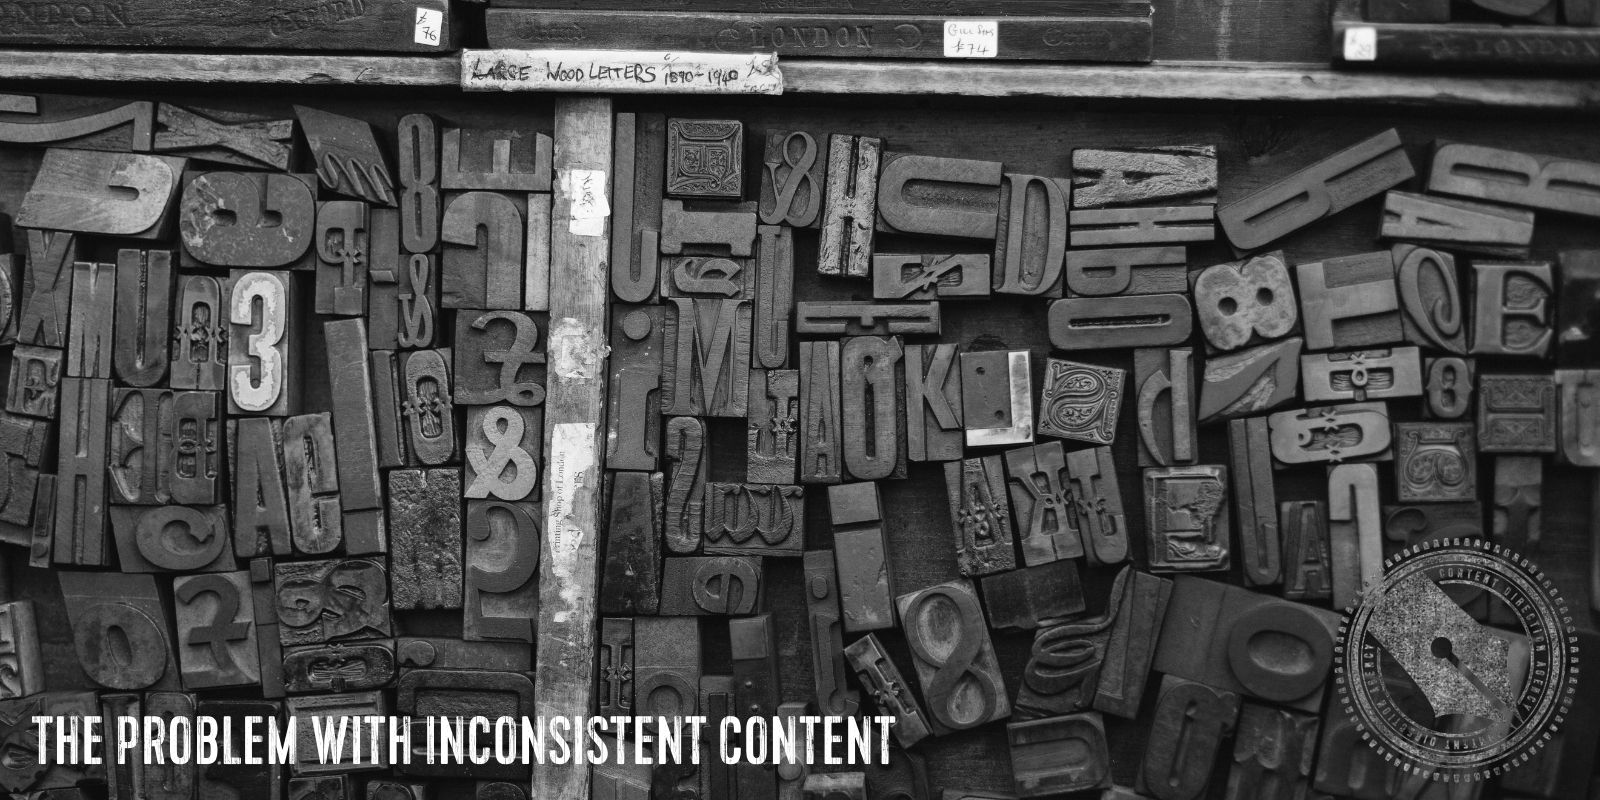 """[A black and white photo of wooden letterpress tiles in a box. Overlaid are the words """"The problem with inconsistent content"""" in a vintage distressed font]"""